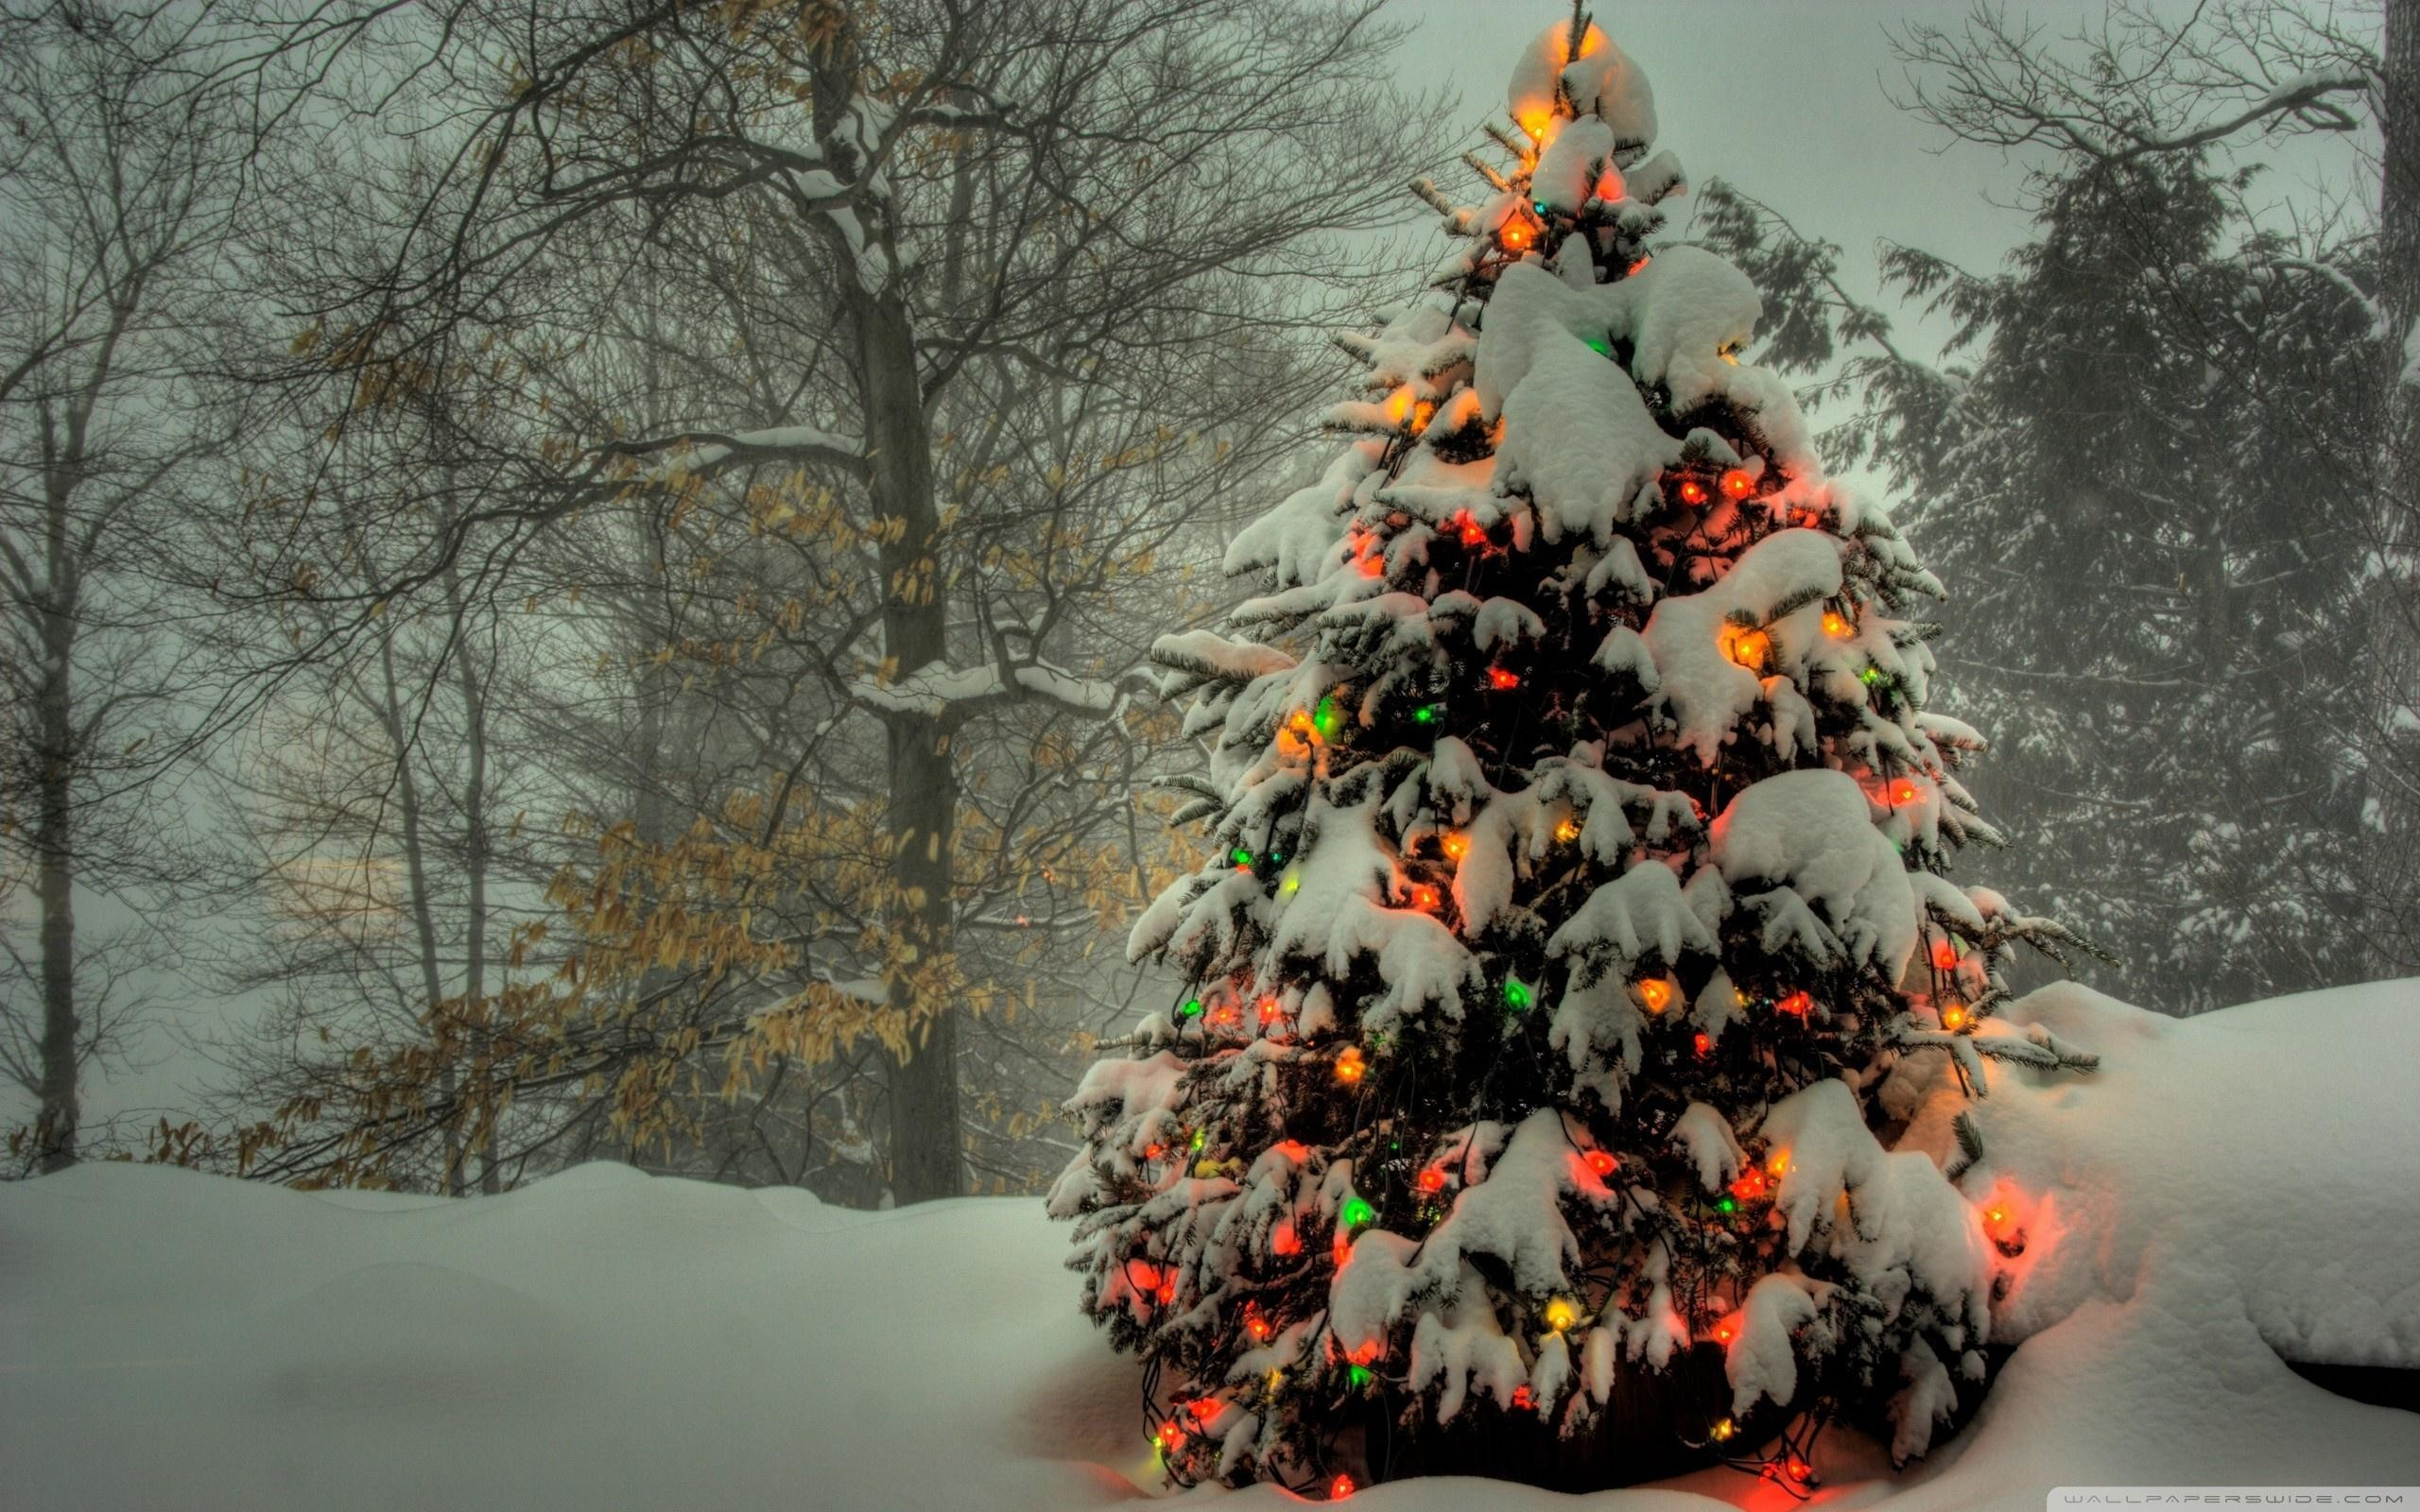 2560x1600 Download Wallpaper · dual monitor christmas wallpaper #143745. christmas hd  wallpaper widescreen ...